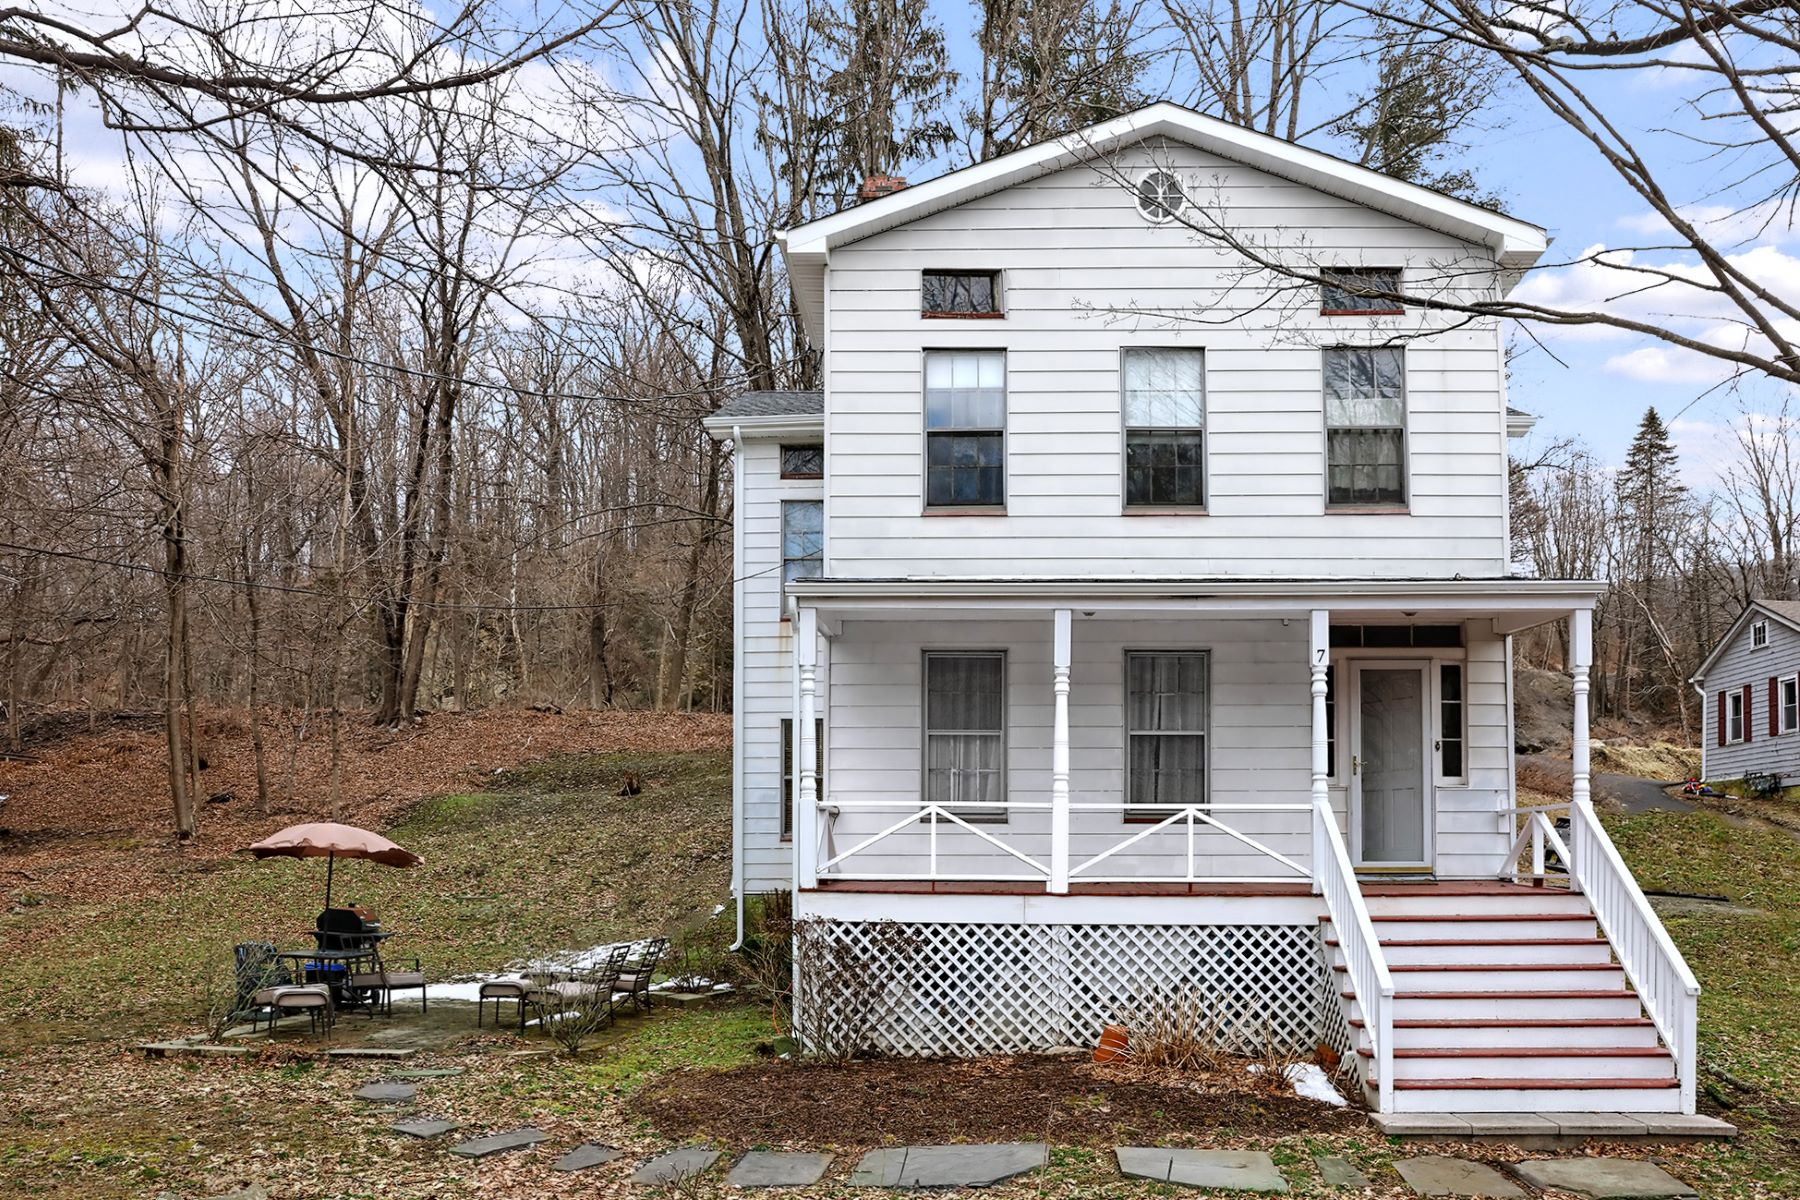 Single Family Home for Sale at Value-priced In A Blue Ribbon District 7 Church Street, Glen Gardner, New Jersey 08826 United States